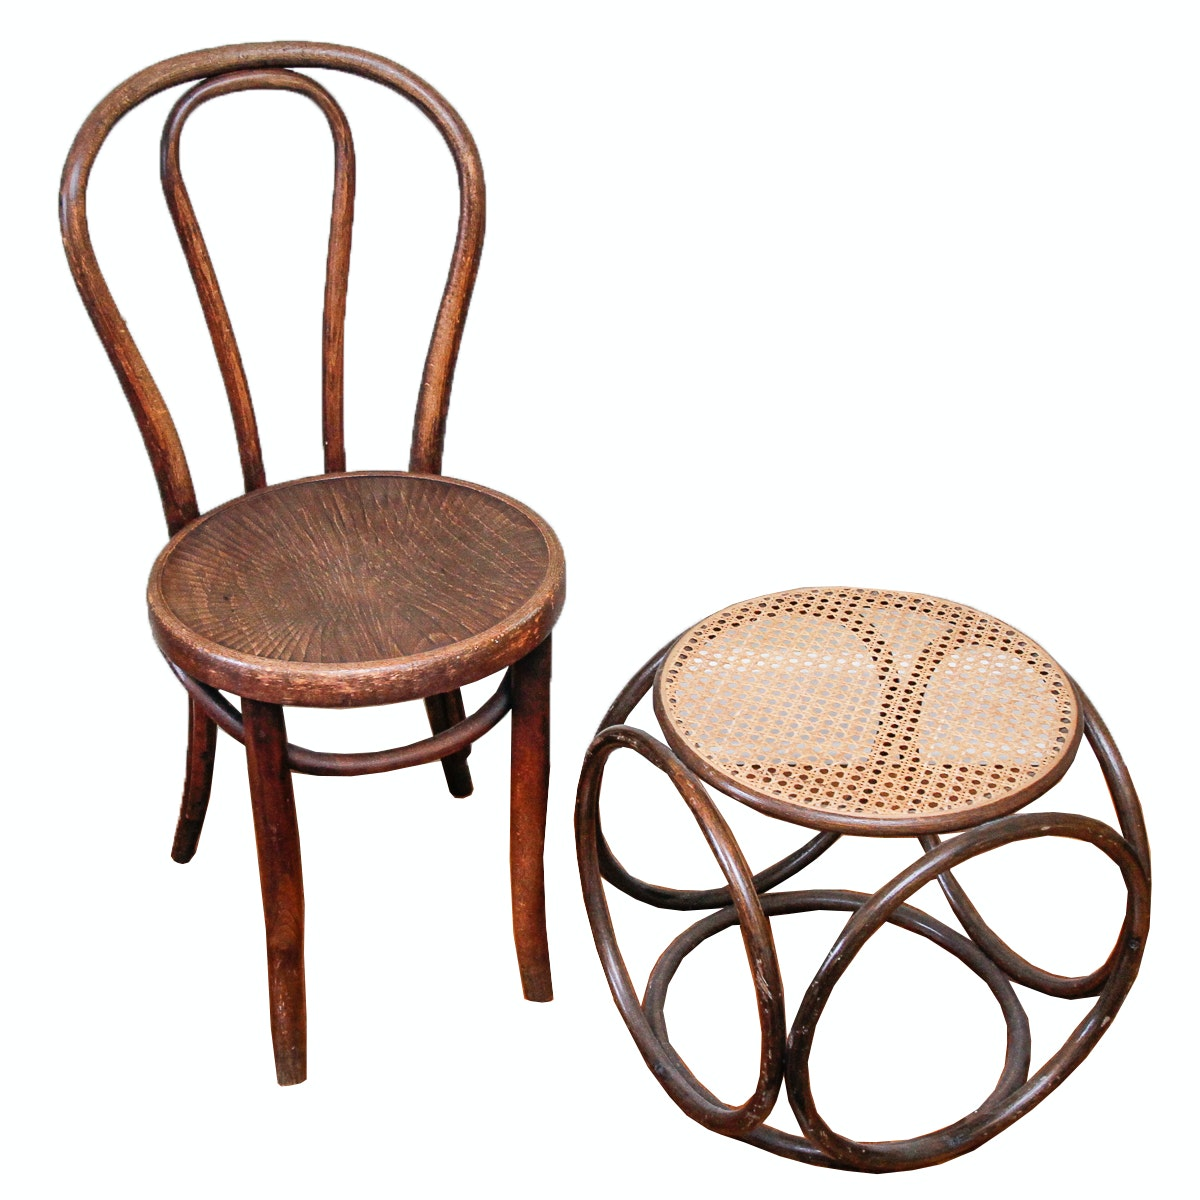 Vintage Bentwood Chair And Cane Ottoman ...